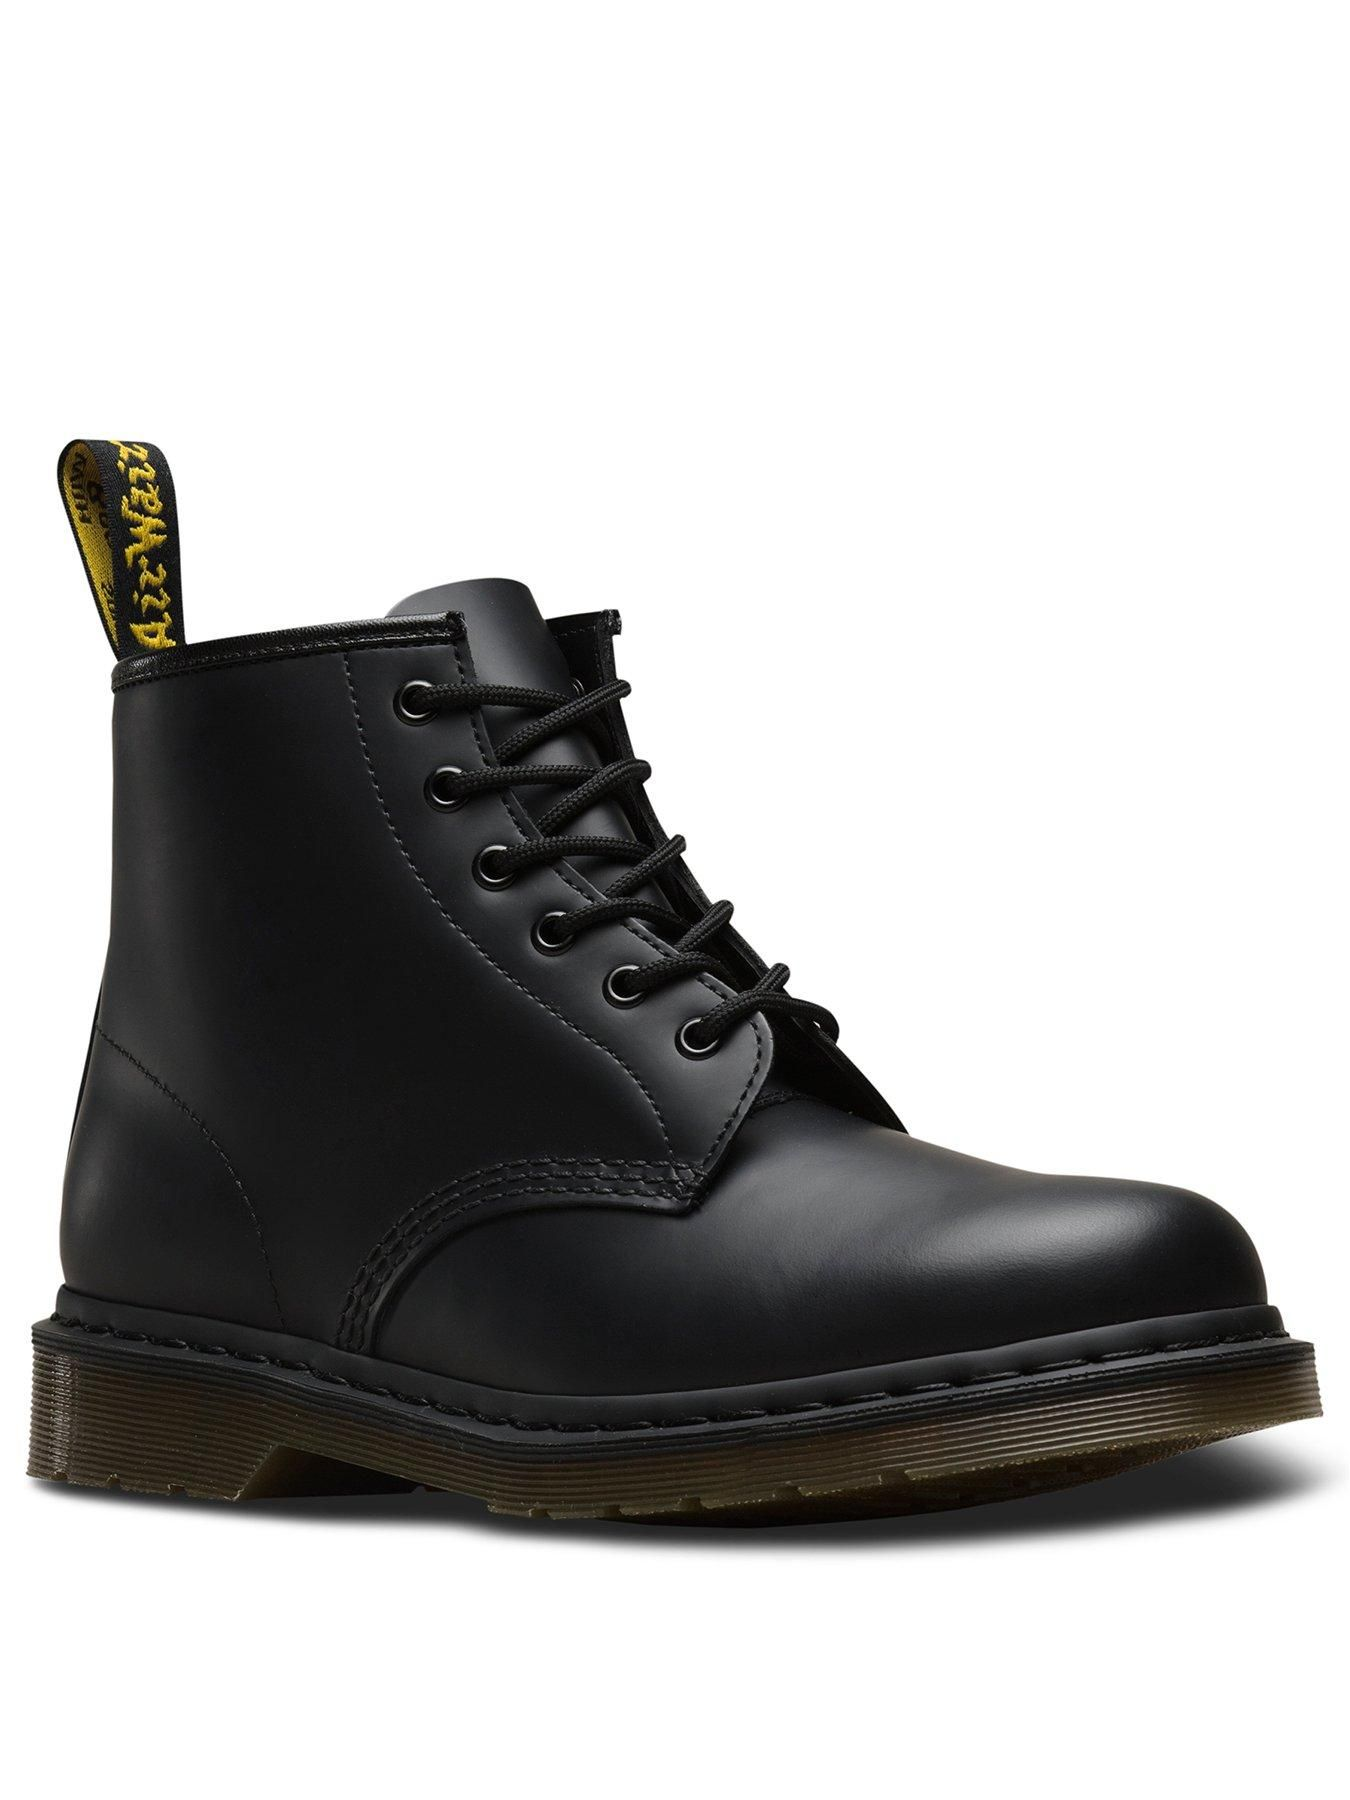 101 Ankle Boot | Boots, High leg boots, Dr martens boots